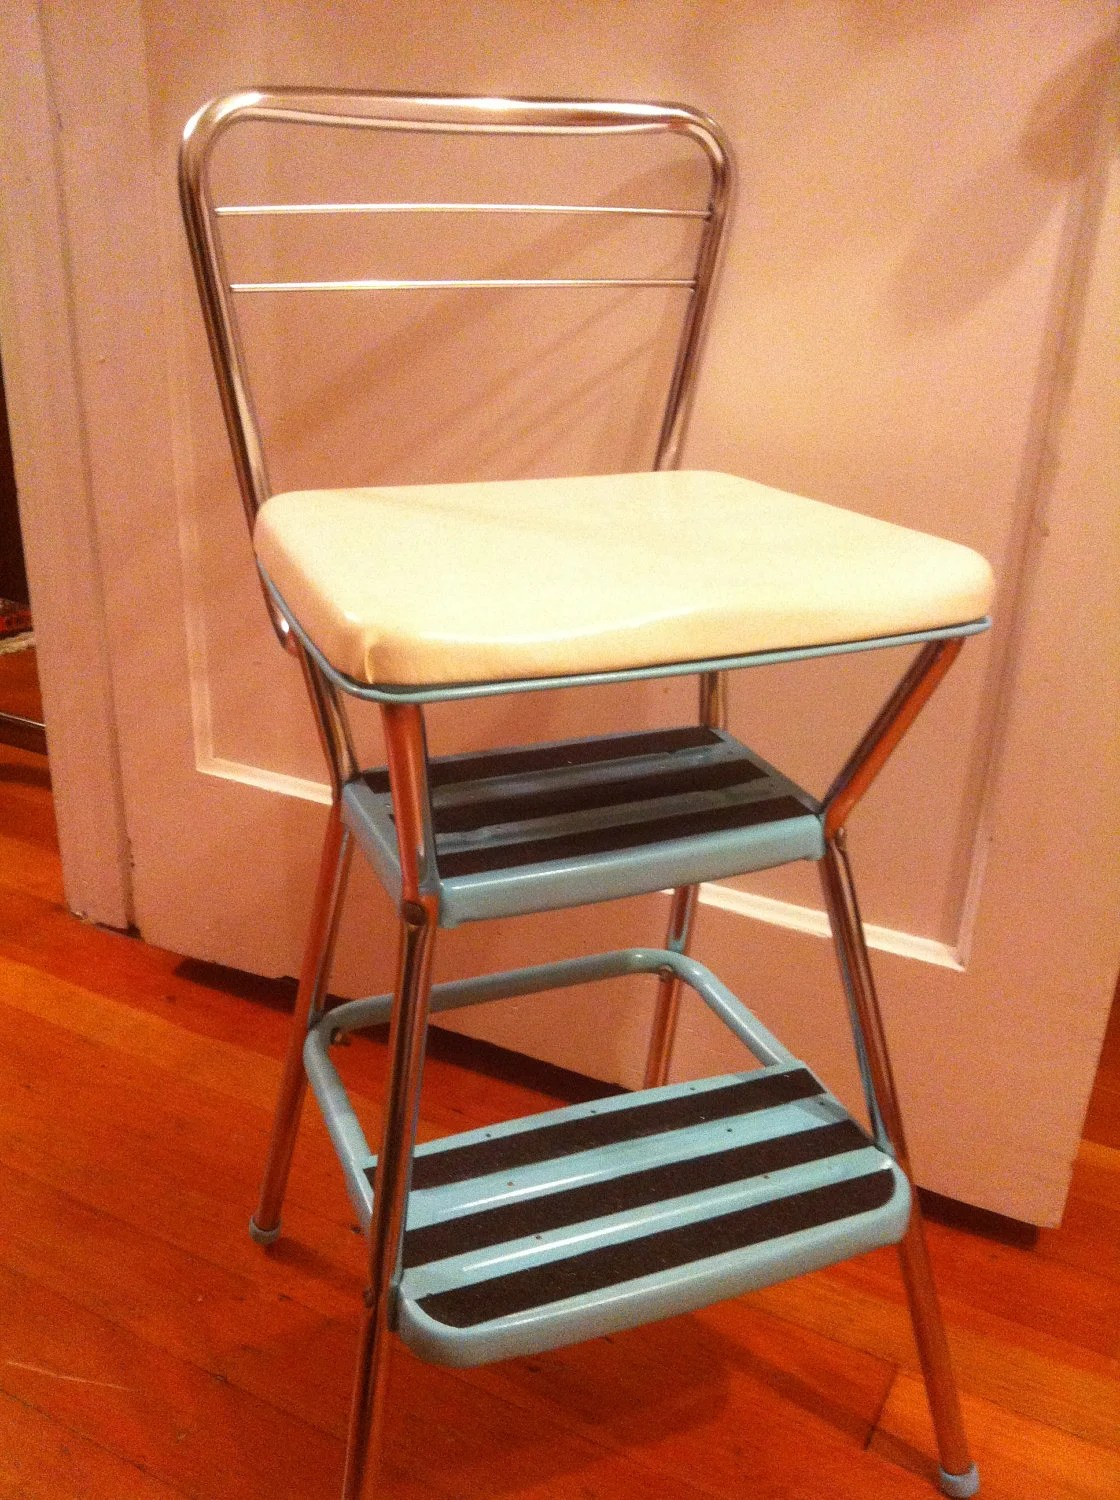 stool chair costco amazon office kitchen step